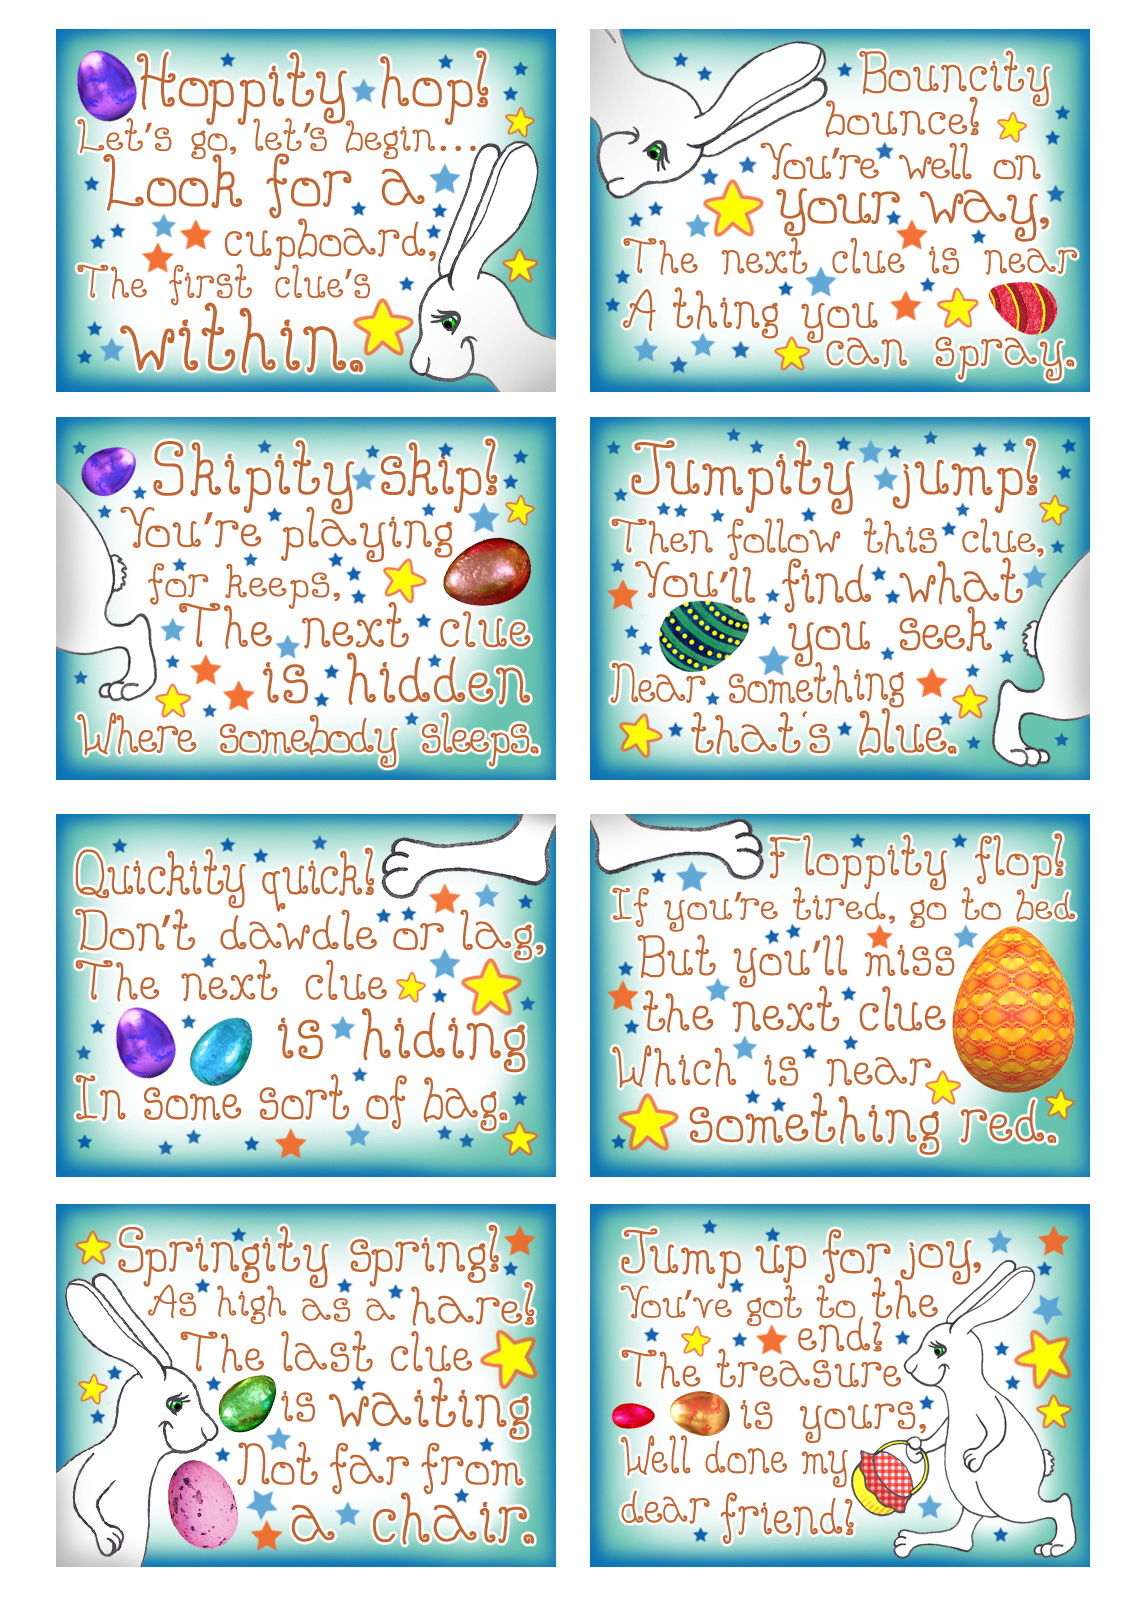 Printable clues from the Easter Bunny for a children's treasure hunt game. Useful for Easter egg hunts indoors.